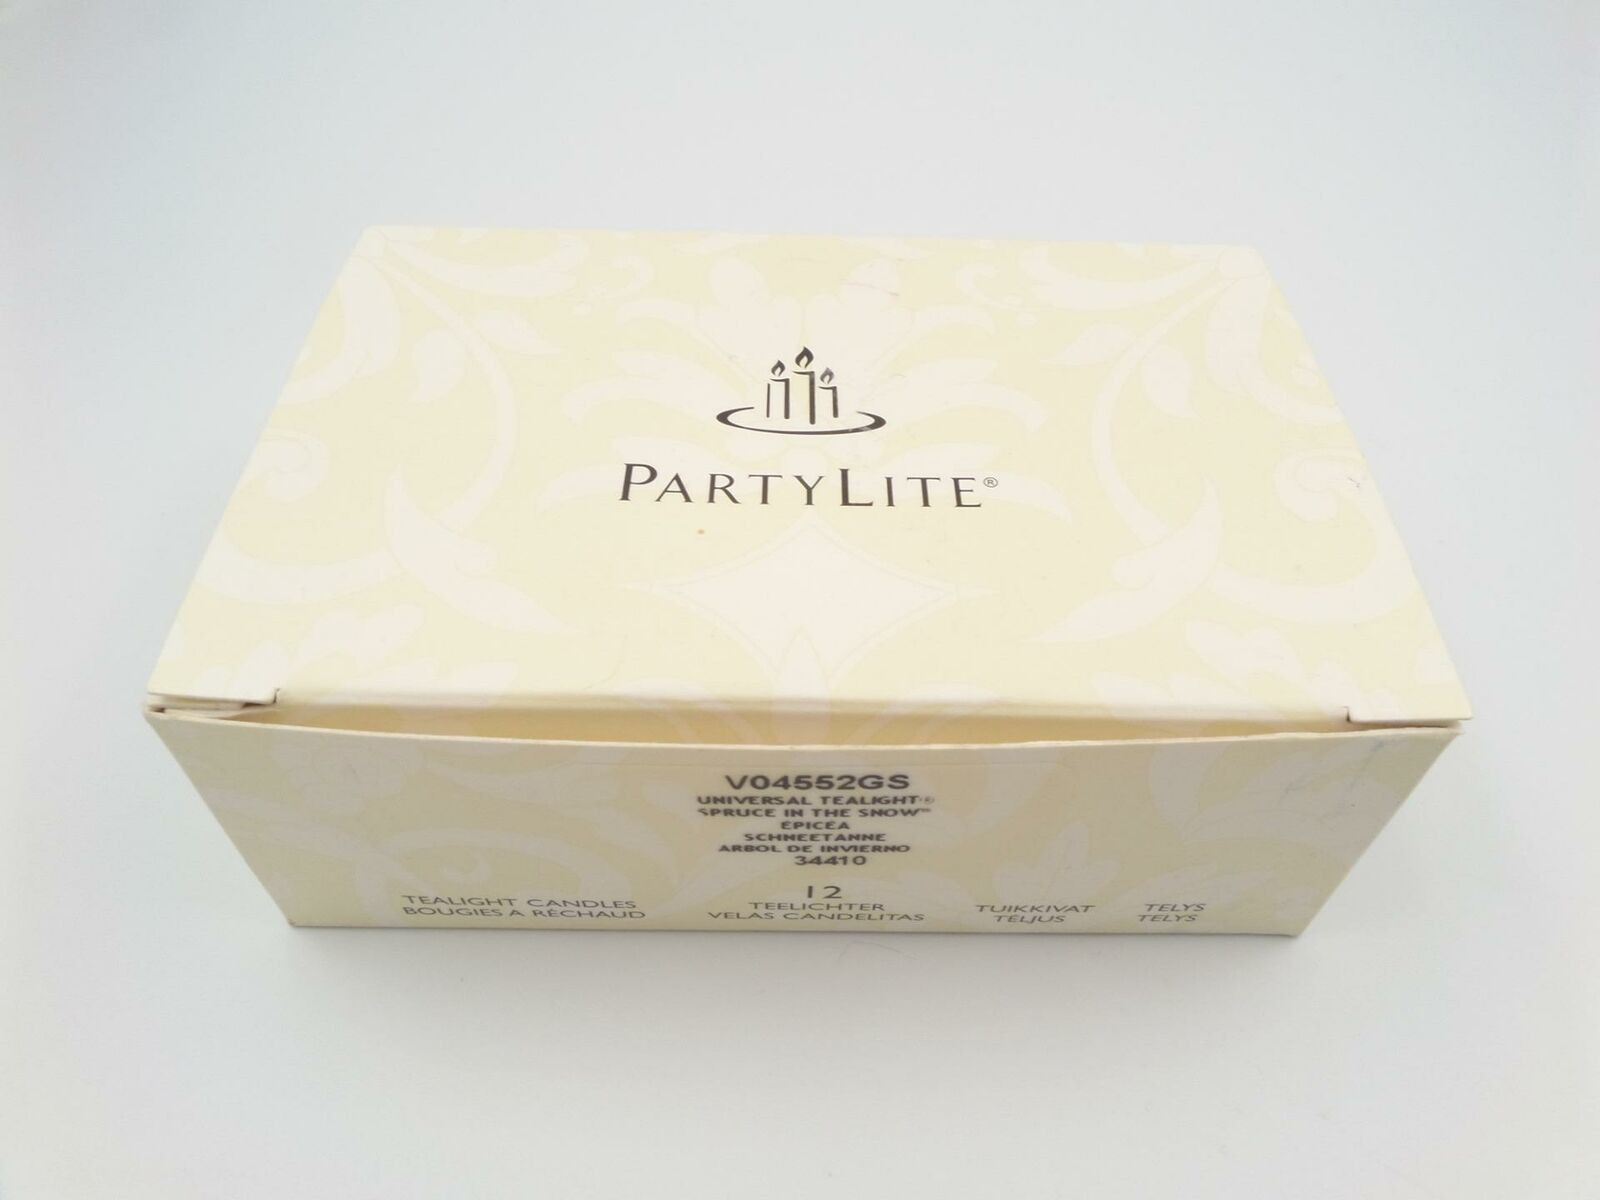 PartyLite Tealight Candles 10 Incomplete Box V04552GS Spruce In The Snow